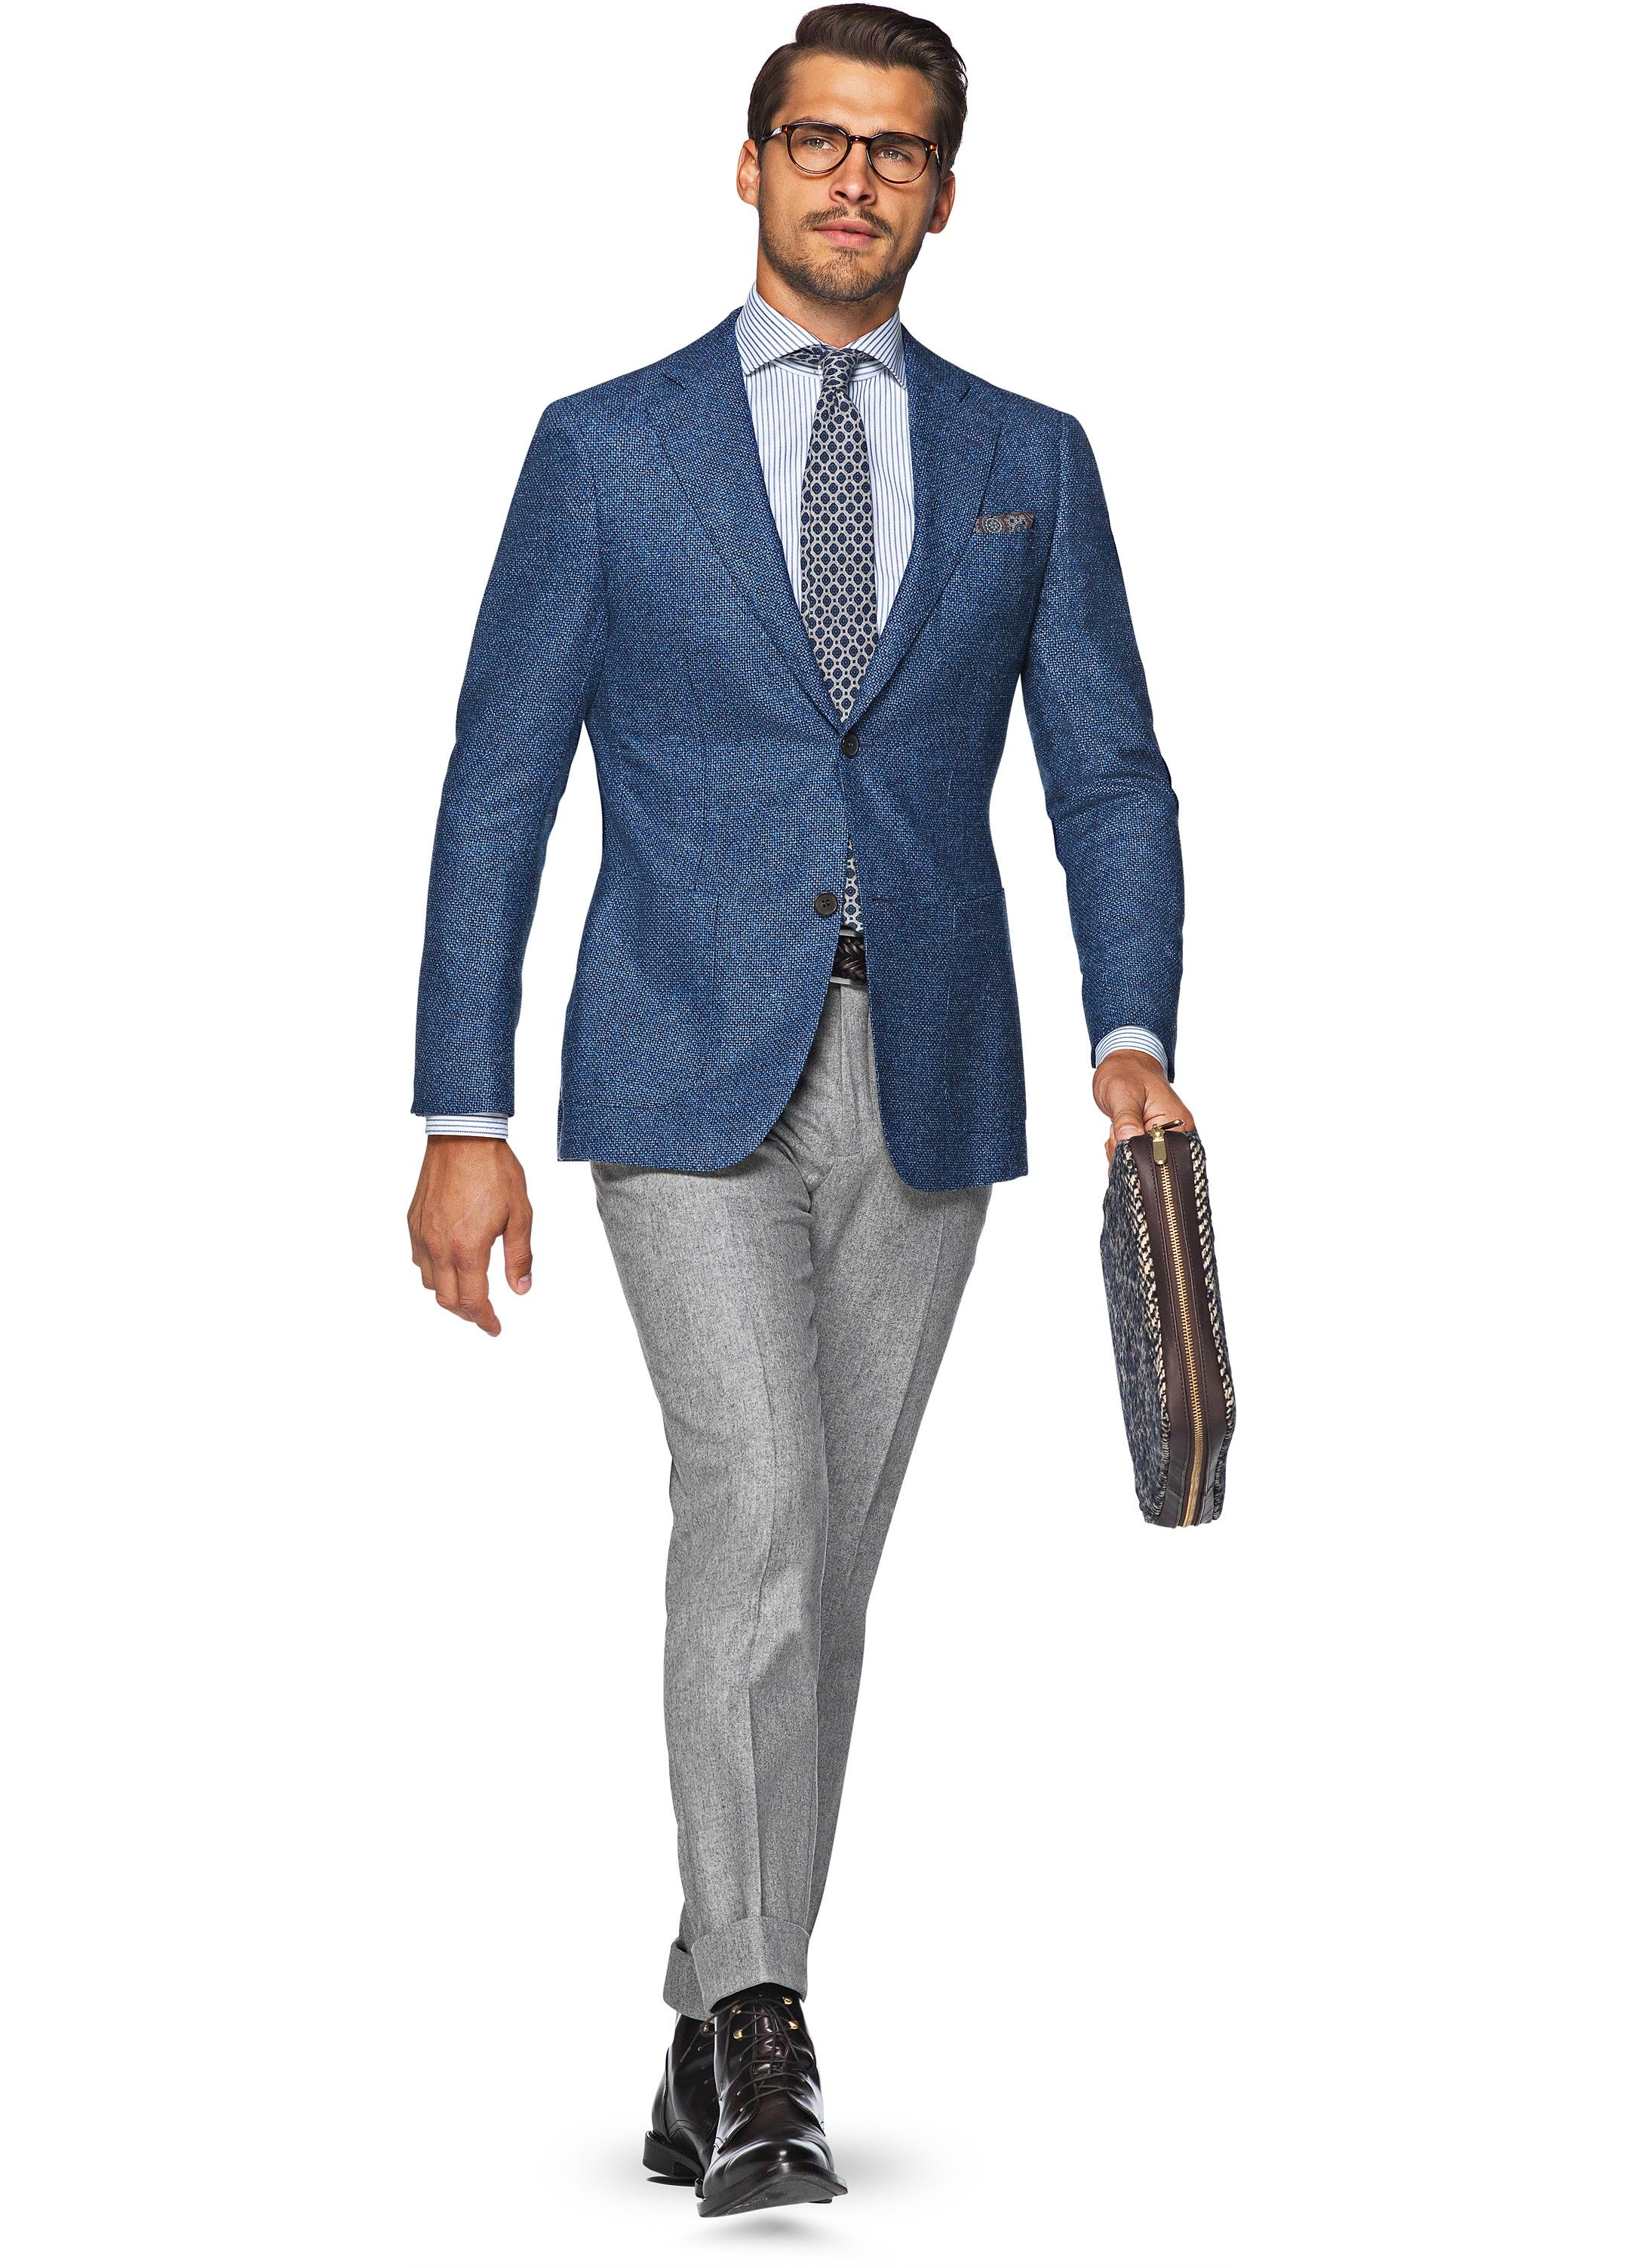 Jacket Blue Birds Eye Hudson C908i | Suitsupply Online Store | f ...